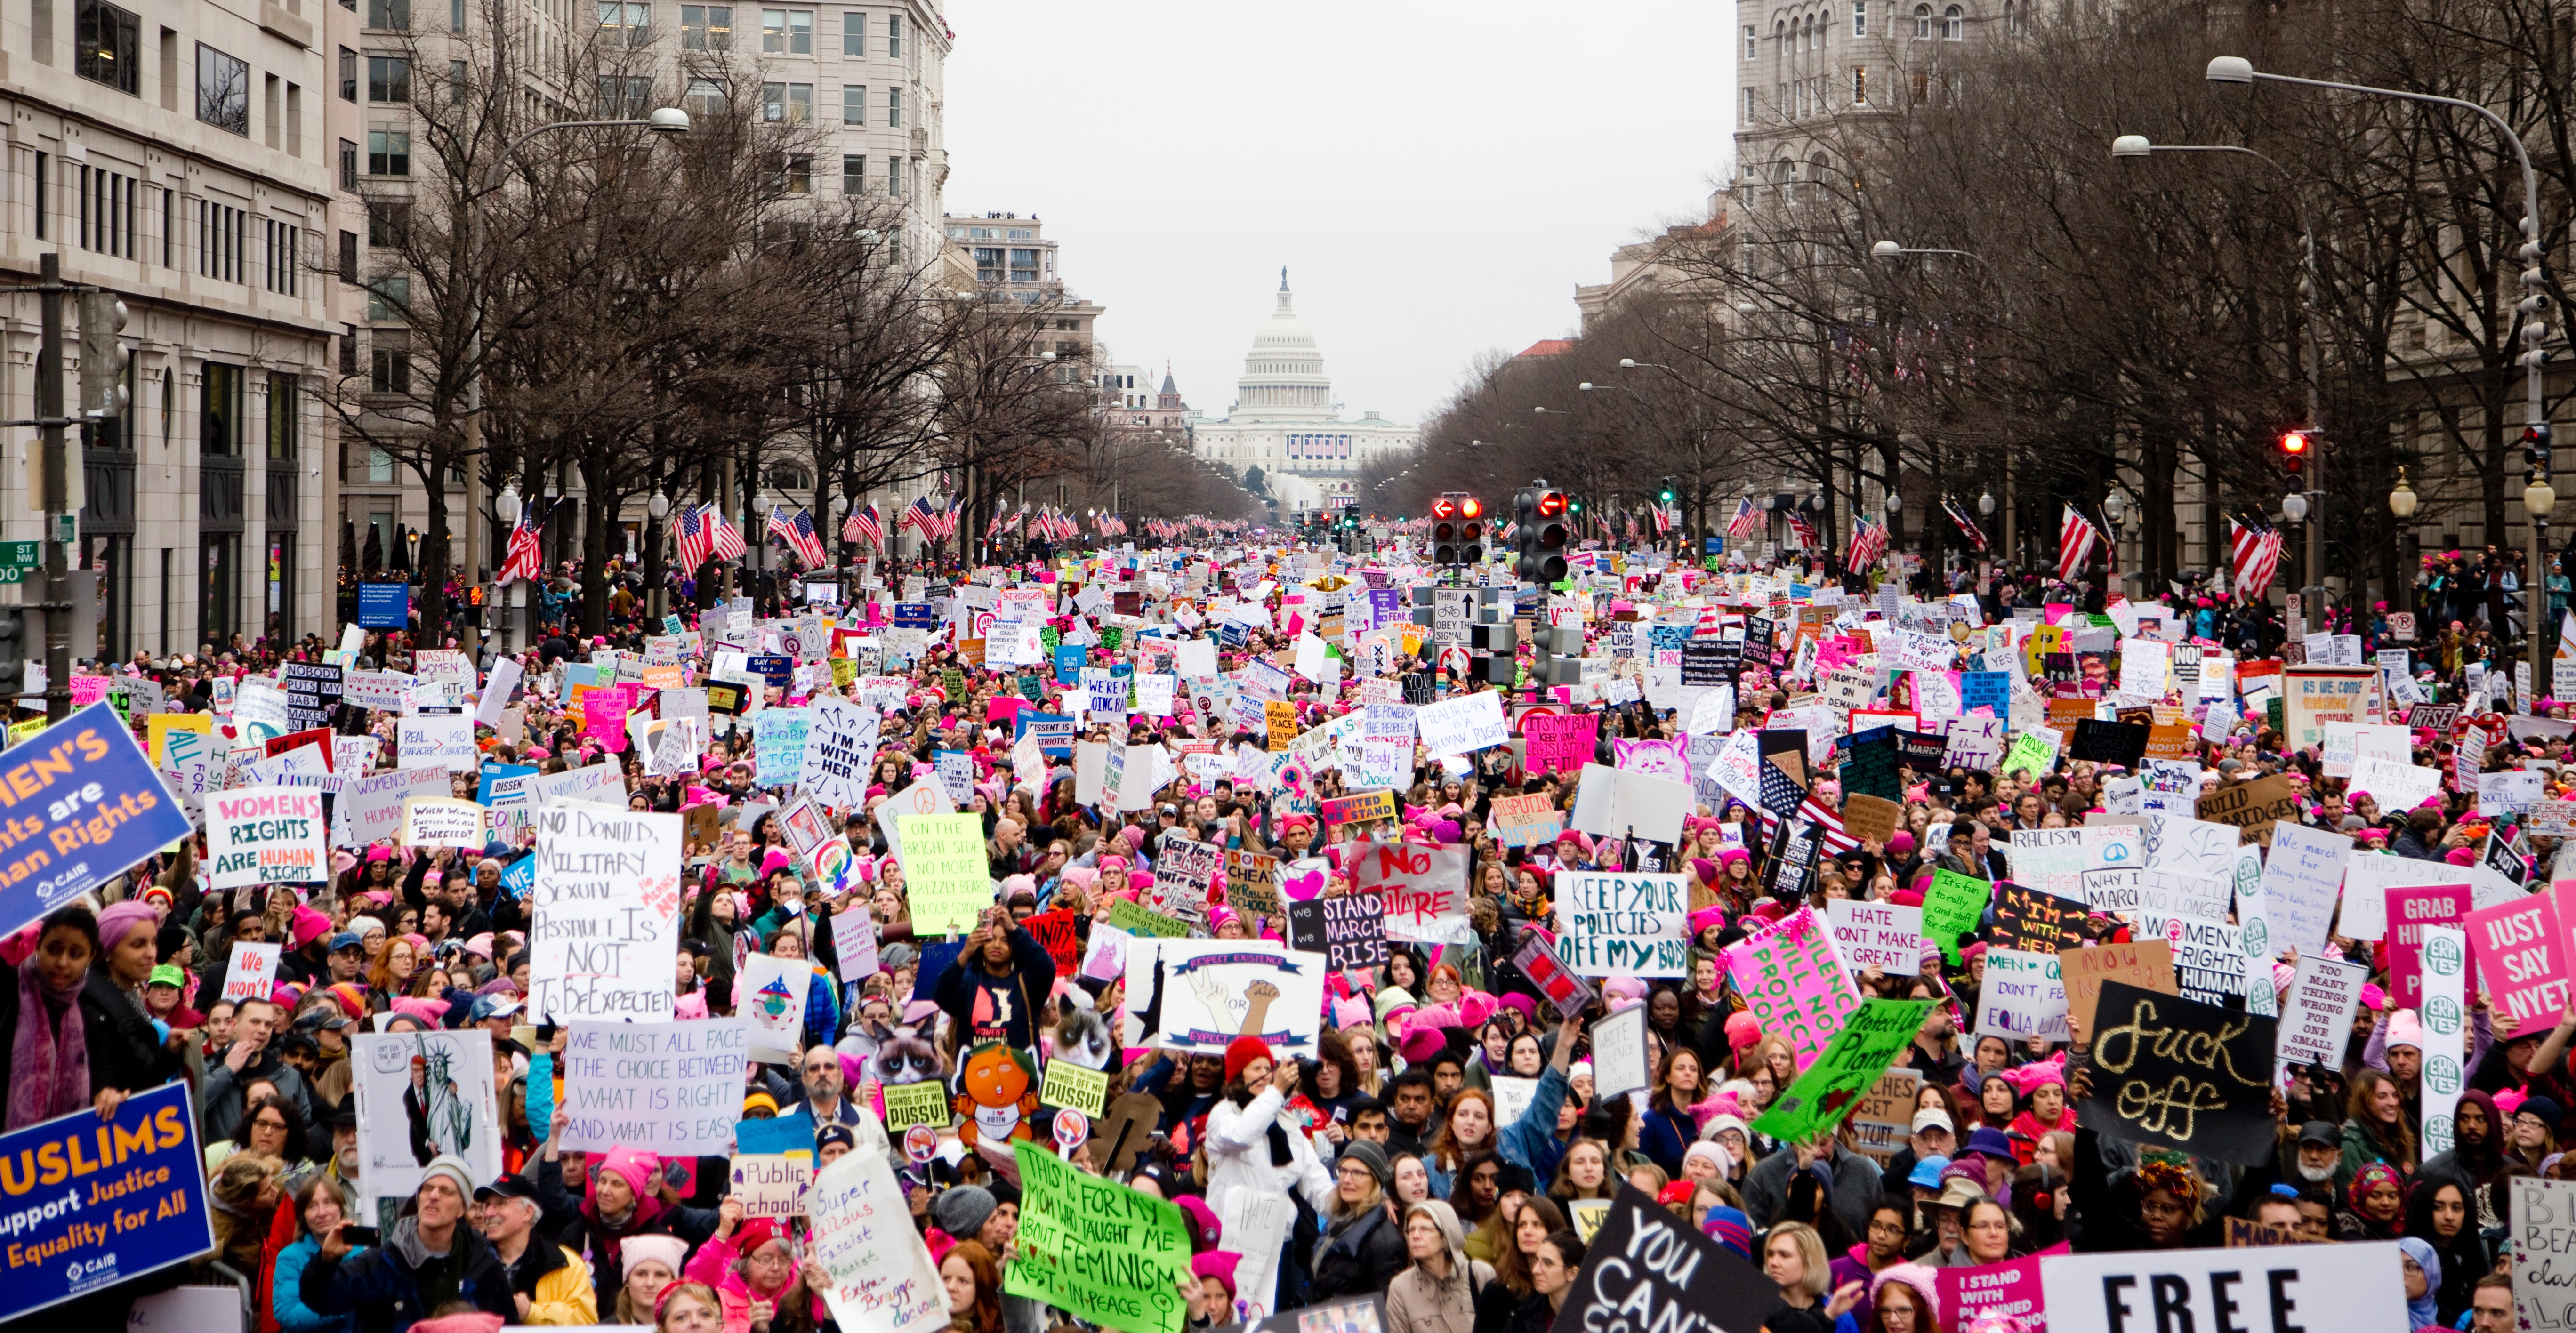 march for women's rights